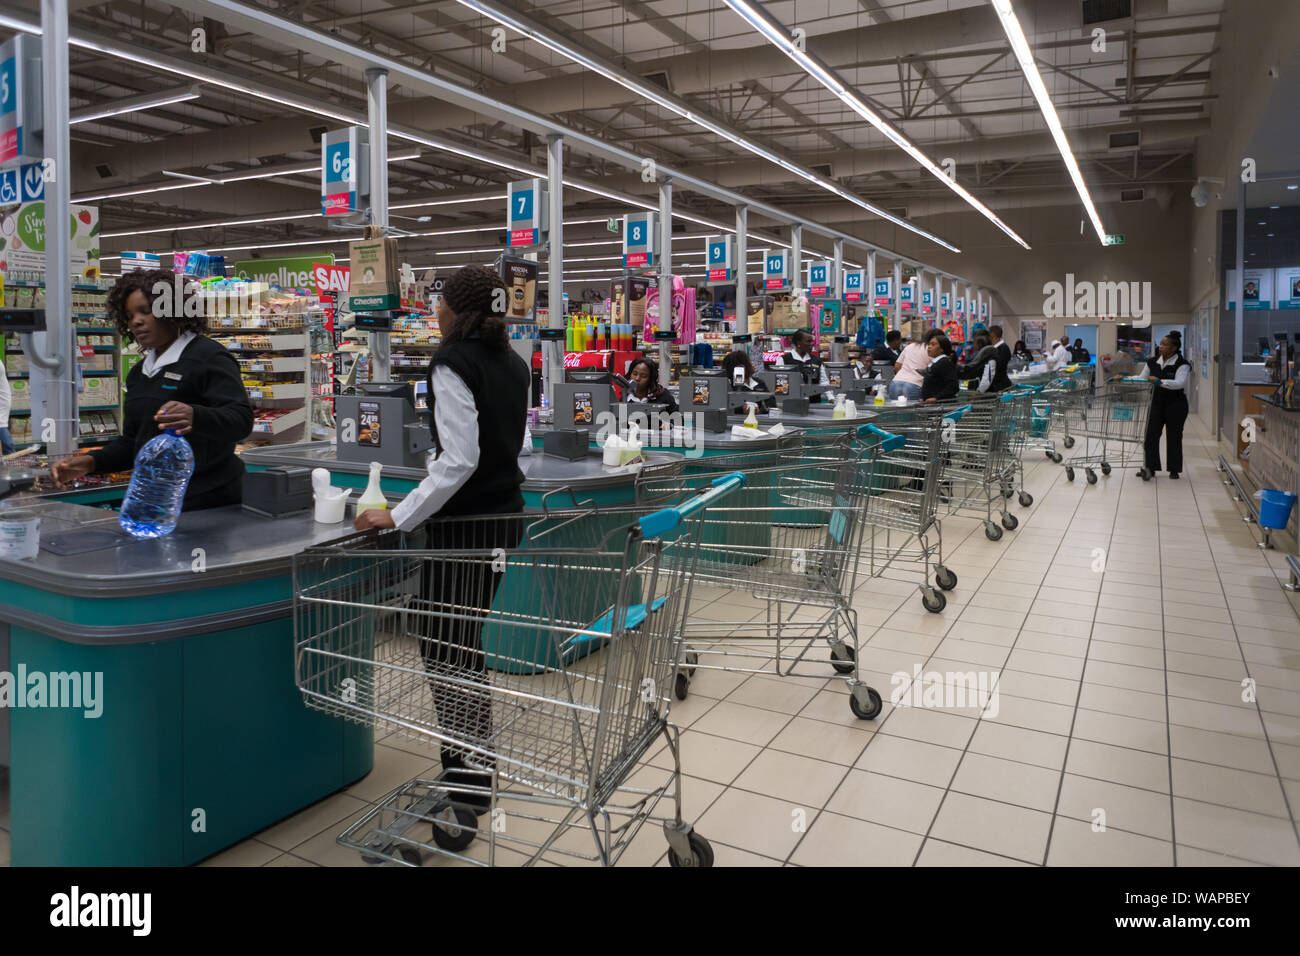 Interior of an African supermarket with many cash pay points or till points and people in Hazyview, Mpumalanga, South Africa Stock Photo